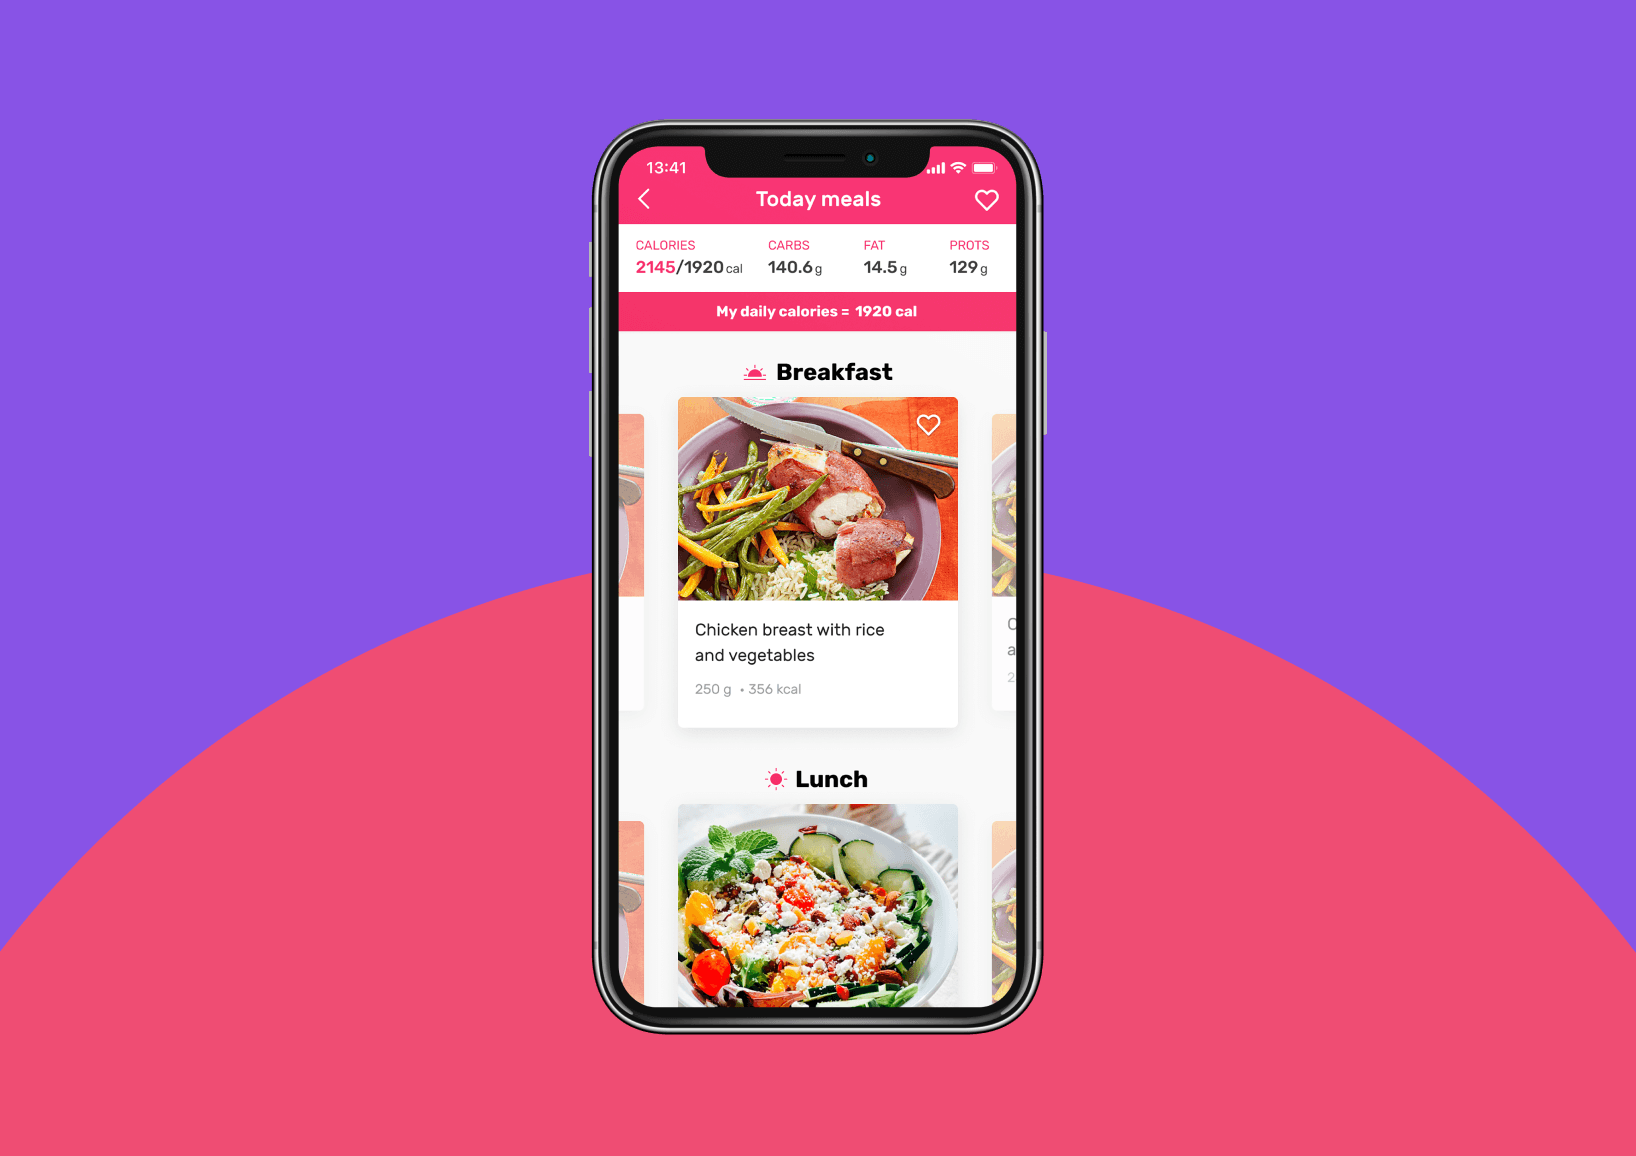 Meals plan in fitness app MsFit